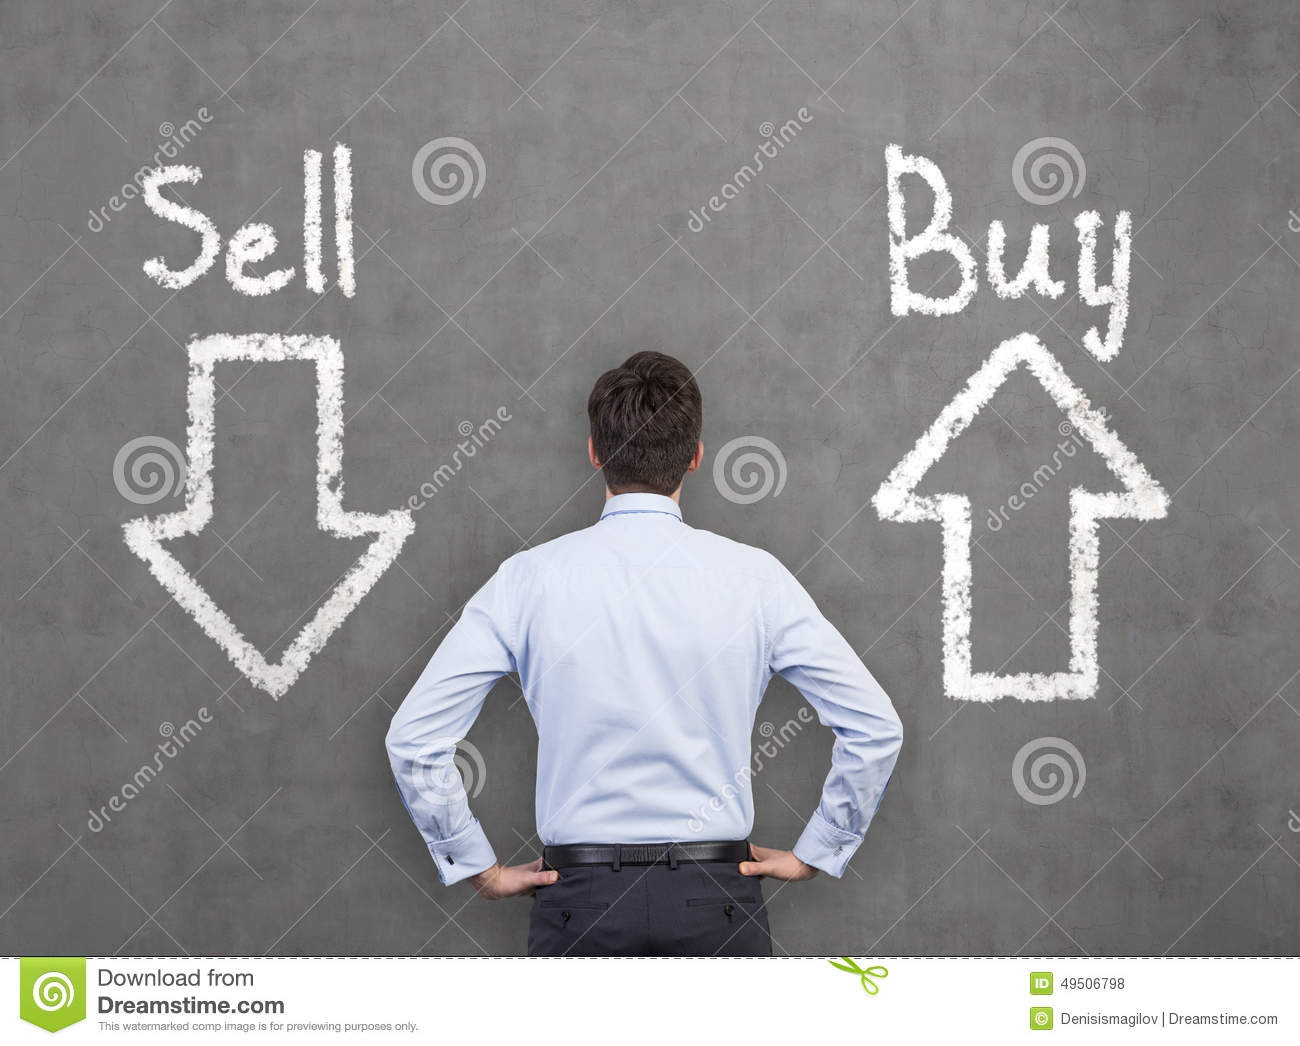 how to sell on stock images